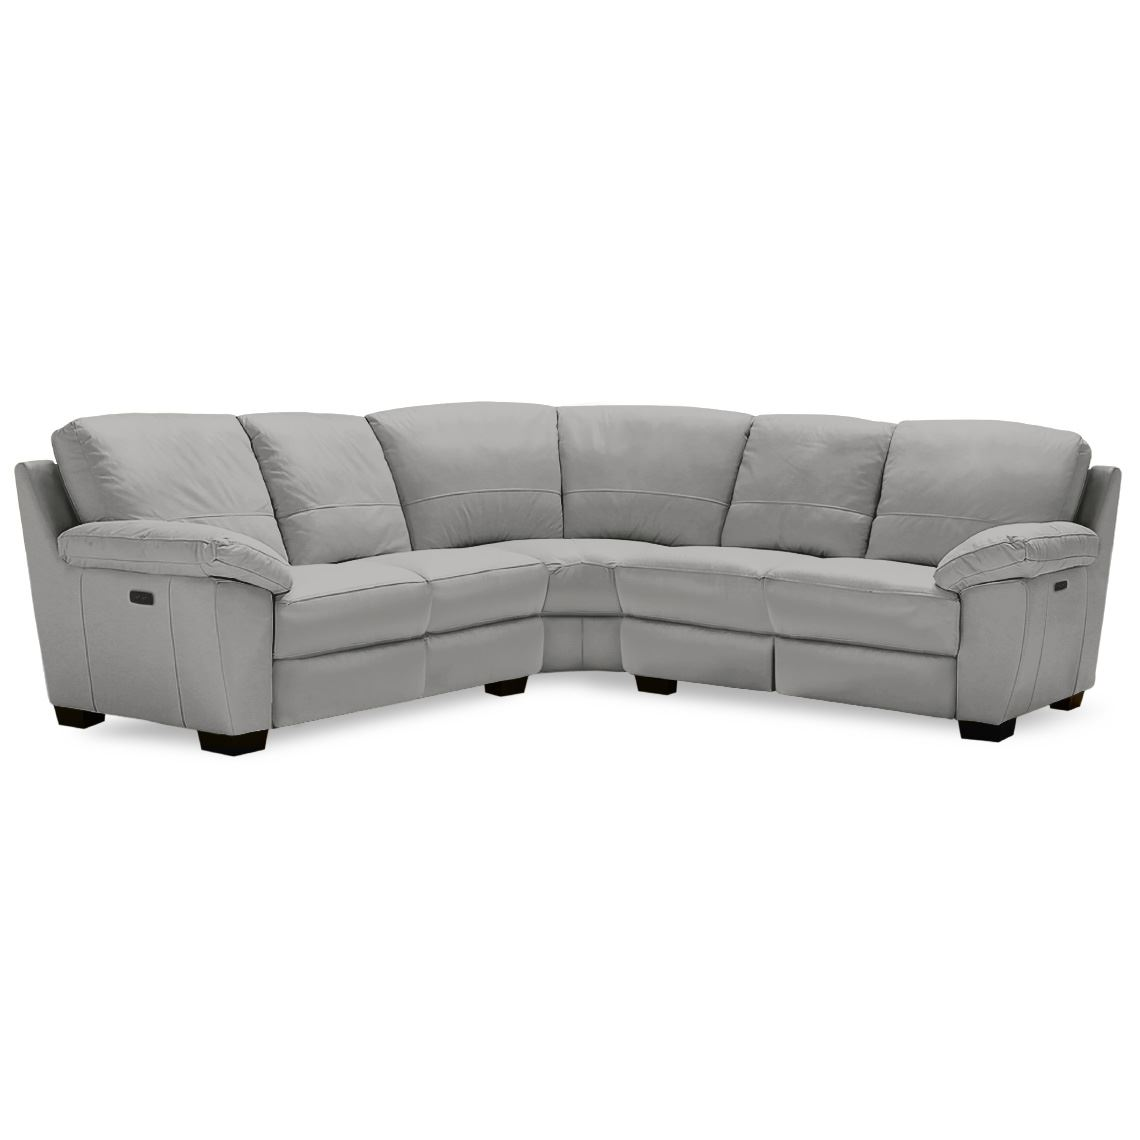 Lucas Recliner 5 Seat Leather Corner Modular Sofa With 2x Electric Recliners Modular Sofa Reclining Sofa Dining Room Table Chairs